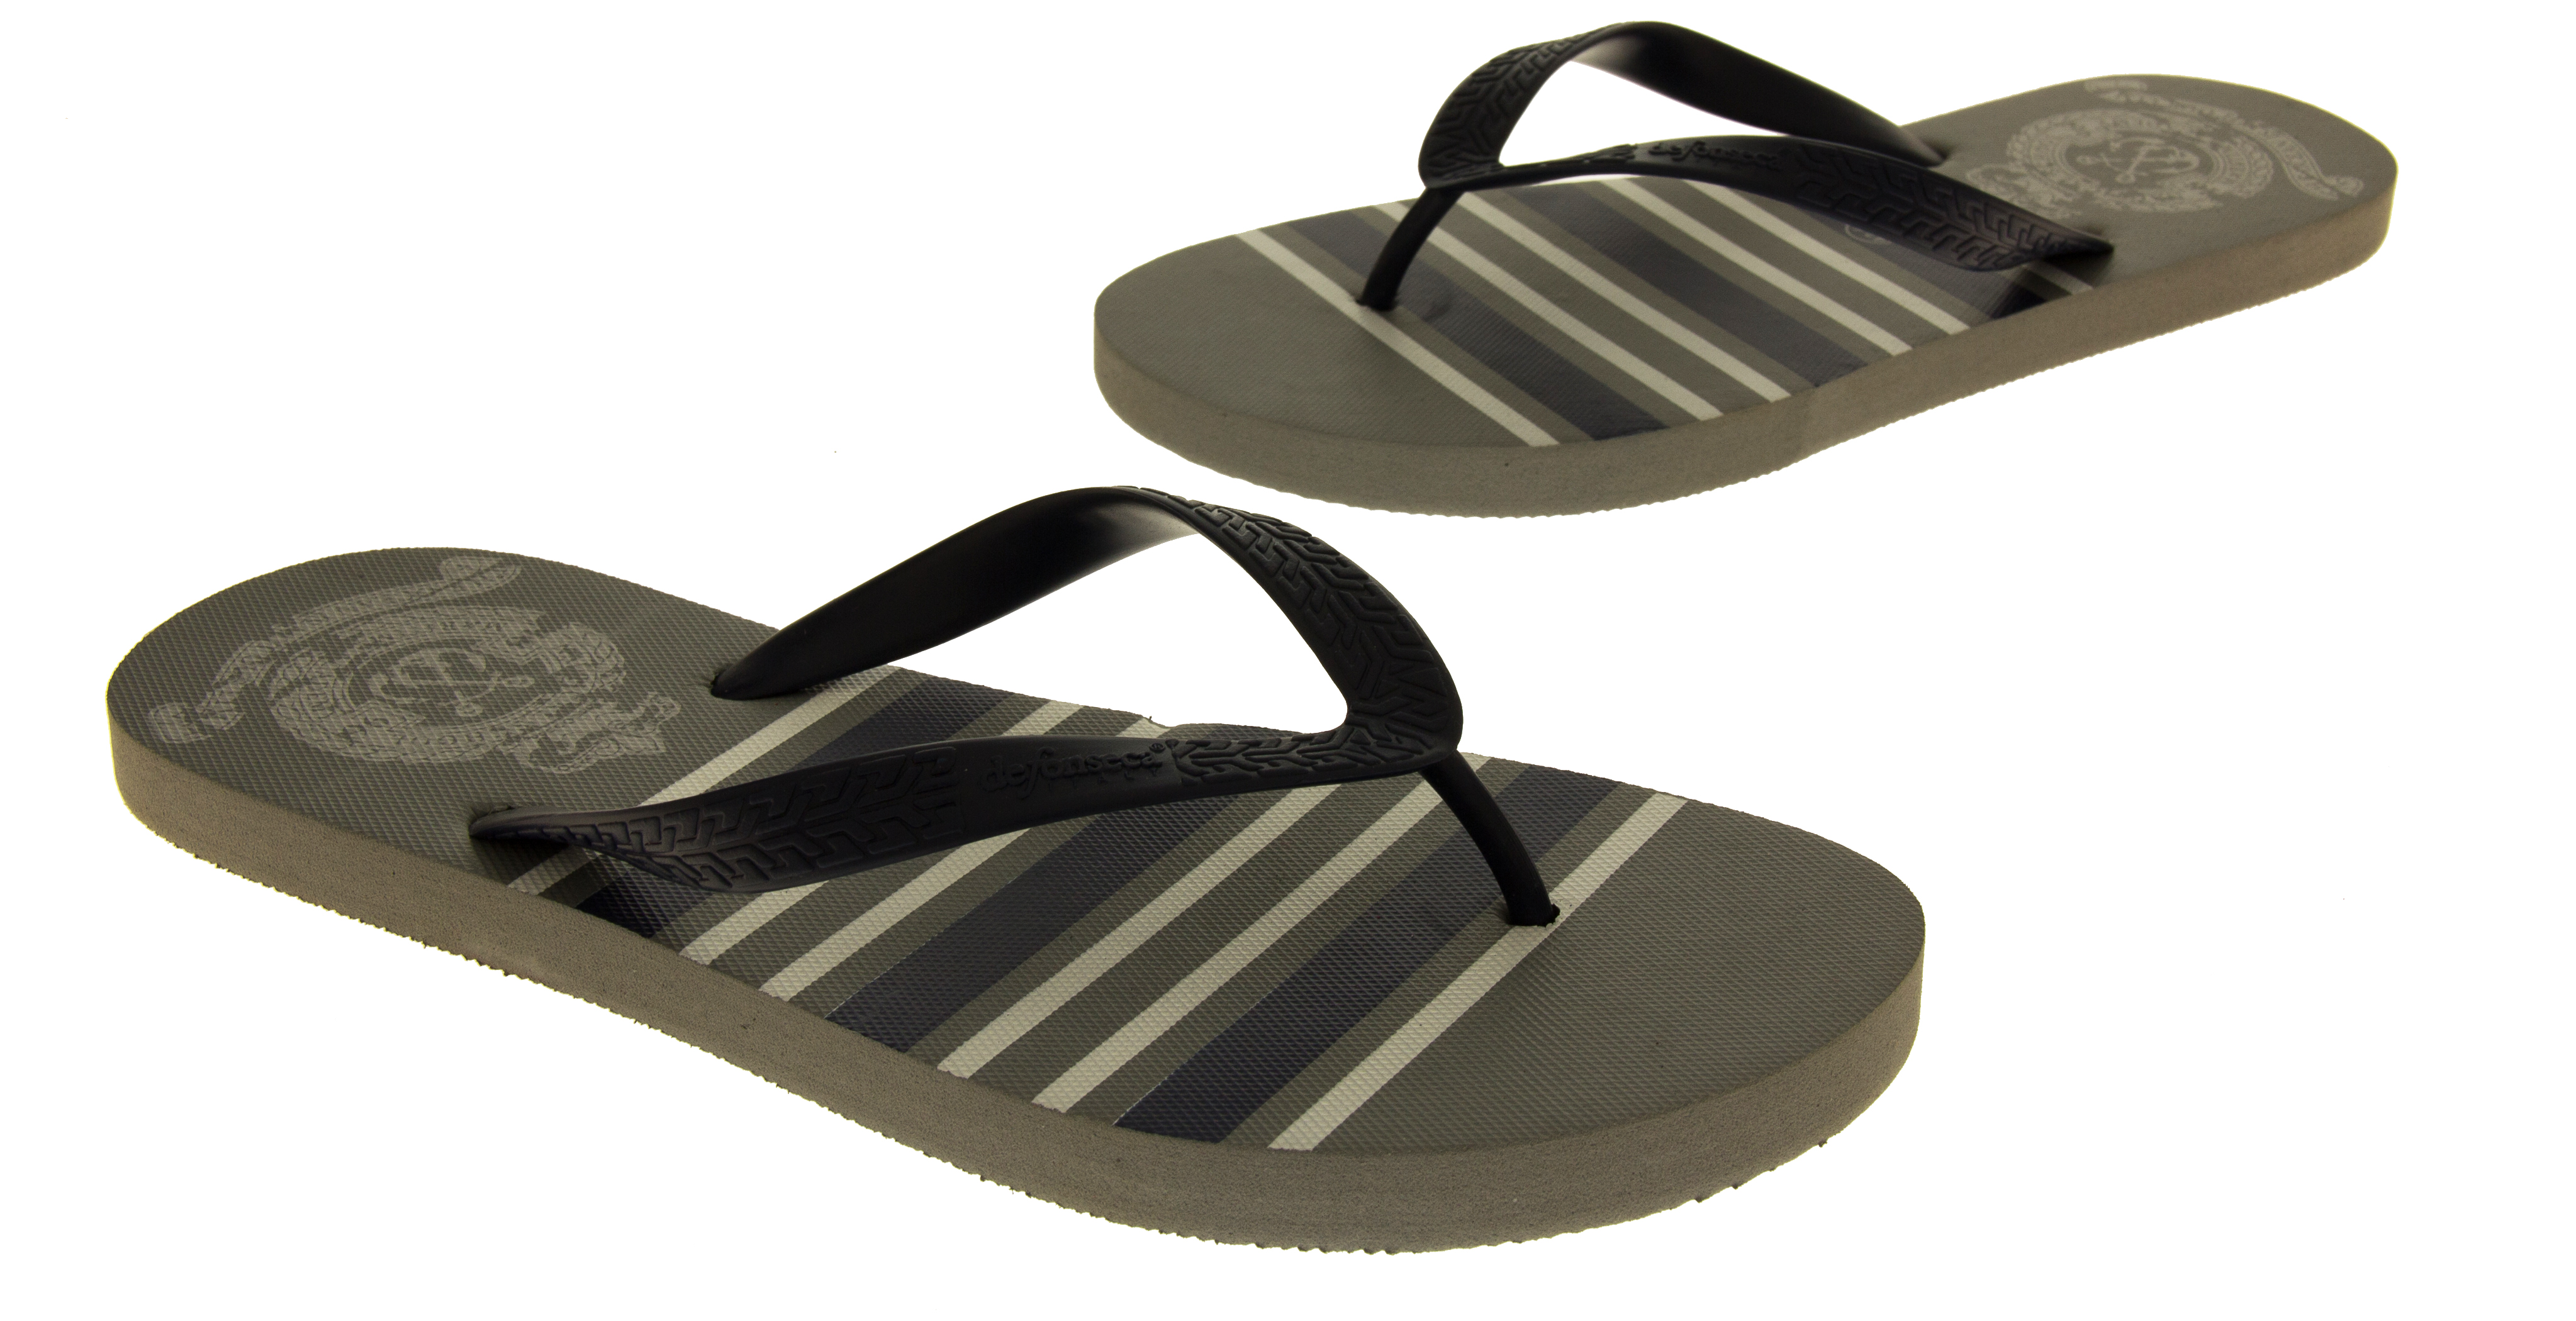 e93100aeb584 Mens De Fonseca Flat Beach Sandals Flip Flops Pool Shoes Size 6 7 8 9 10